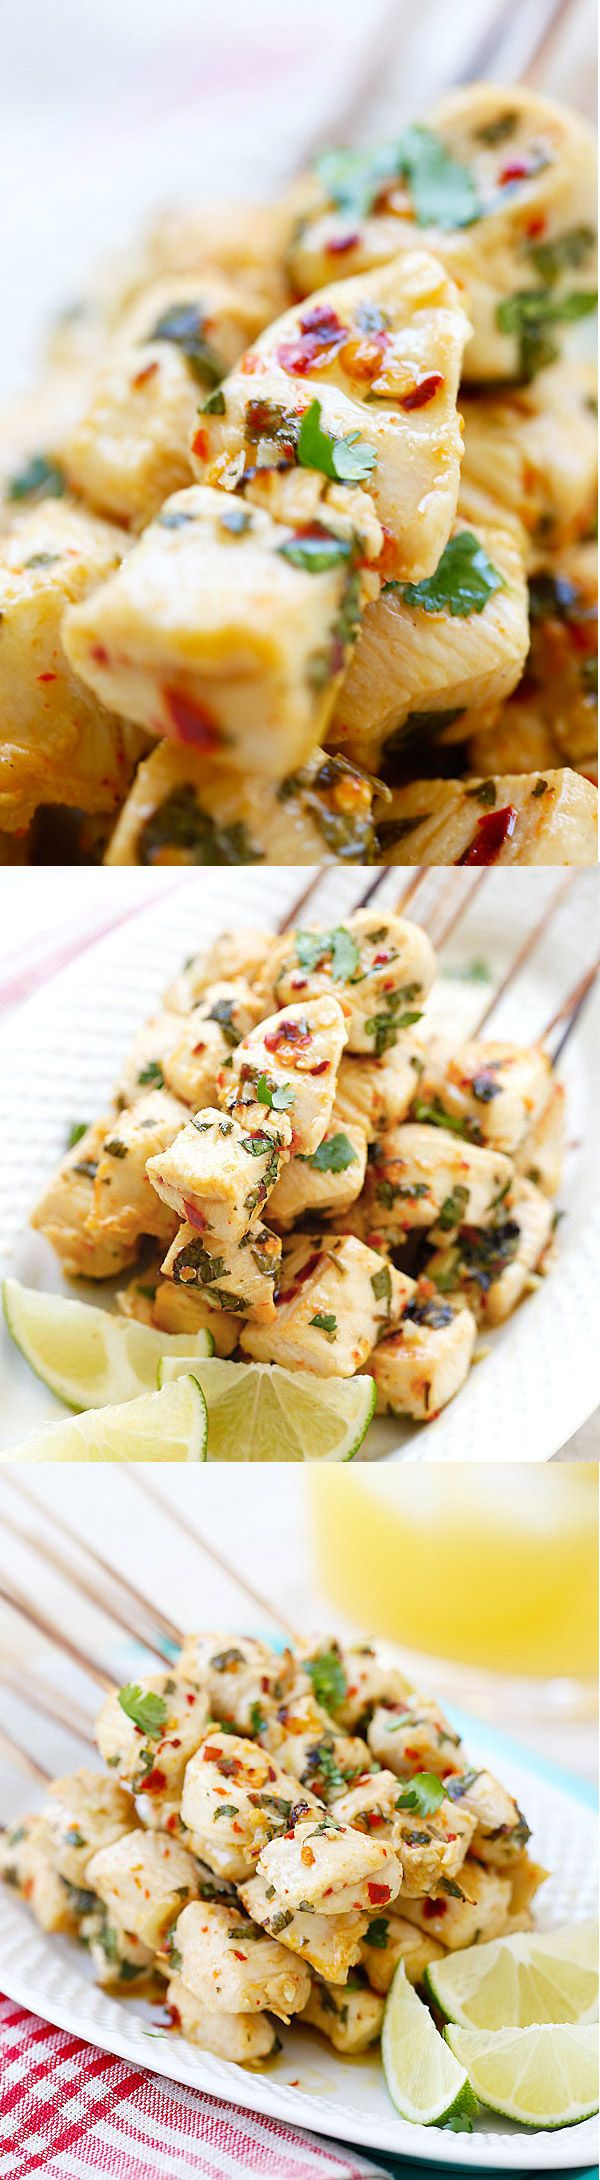 how to cook marinated chicken kebabs